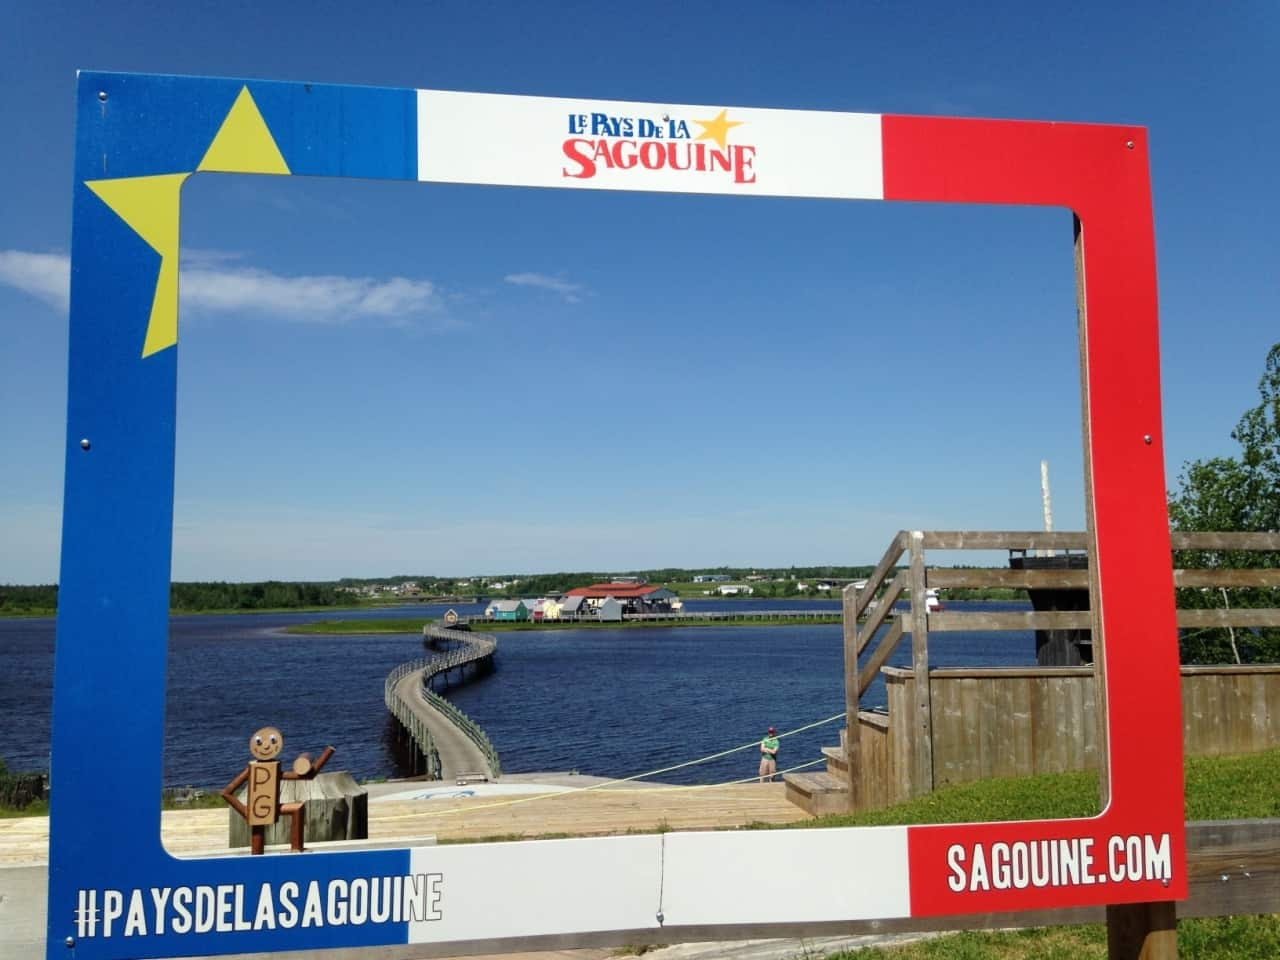 583441f384e1472ac458ee58.jpg - Le Pays de la Sagouine, NB -  Across Canada in search of #BIGselfies trip 2014<br />I heartily recommend a stop here if you are passing, I didn't know the book it is based on but it was still lots of fun and I came away with a copy to read, bit of a backwards way of doing things but ordinary is boring ;-)